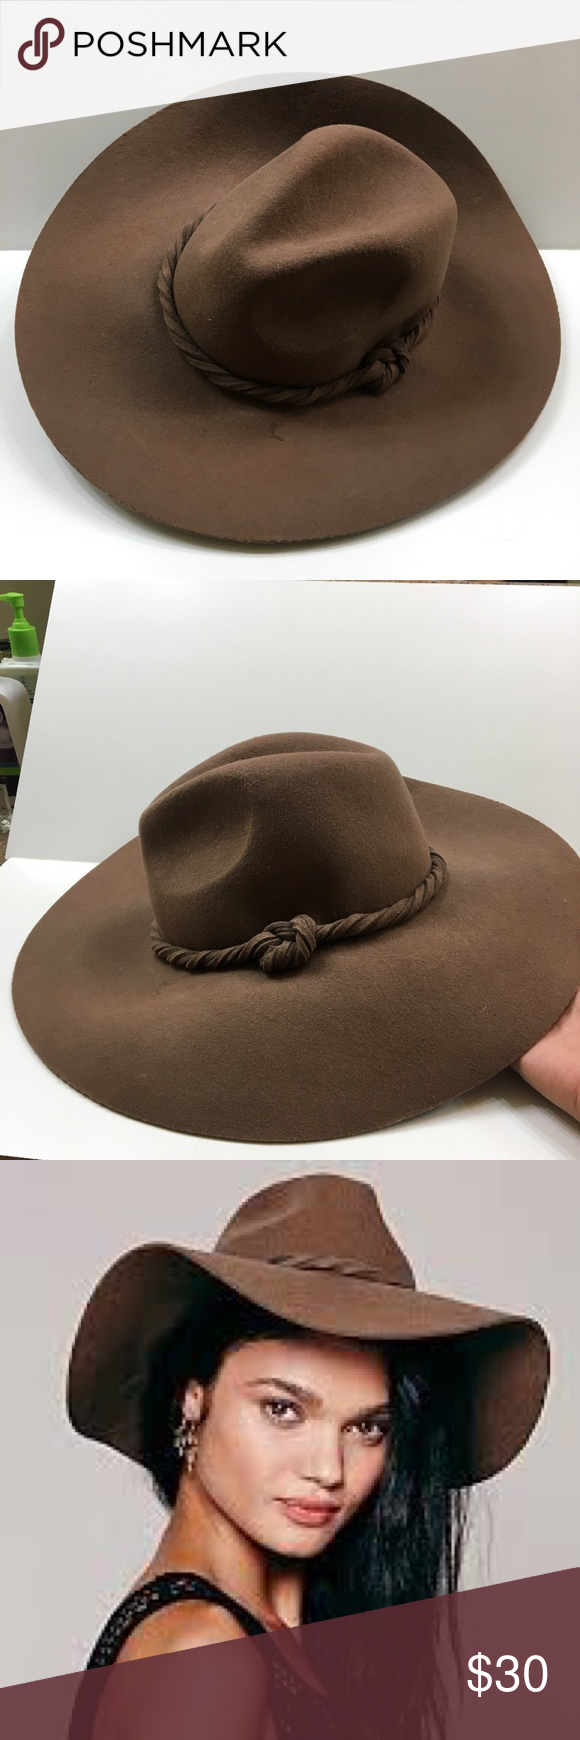 6346c6faf5718c Free People boho fedora hat used Free People Clipperton boho Fedora Hat  With Extended Brim. Dark Brown, Felt, with Twisted Knotted Band. Perfect  Festival ...